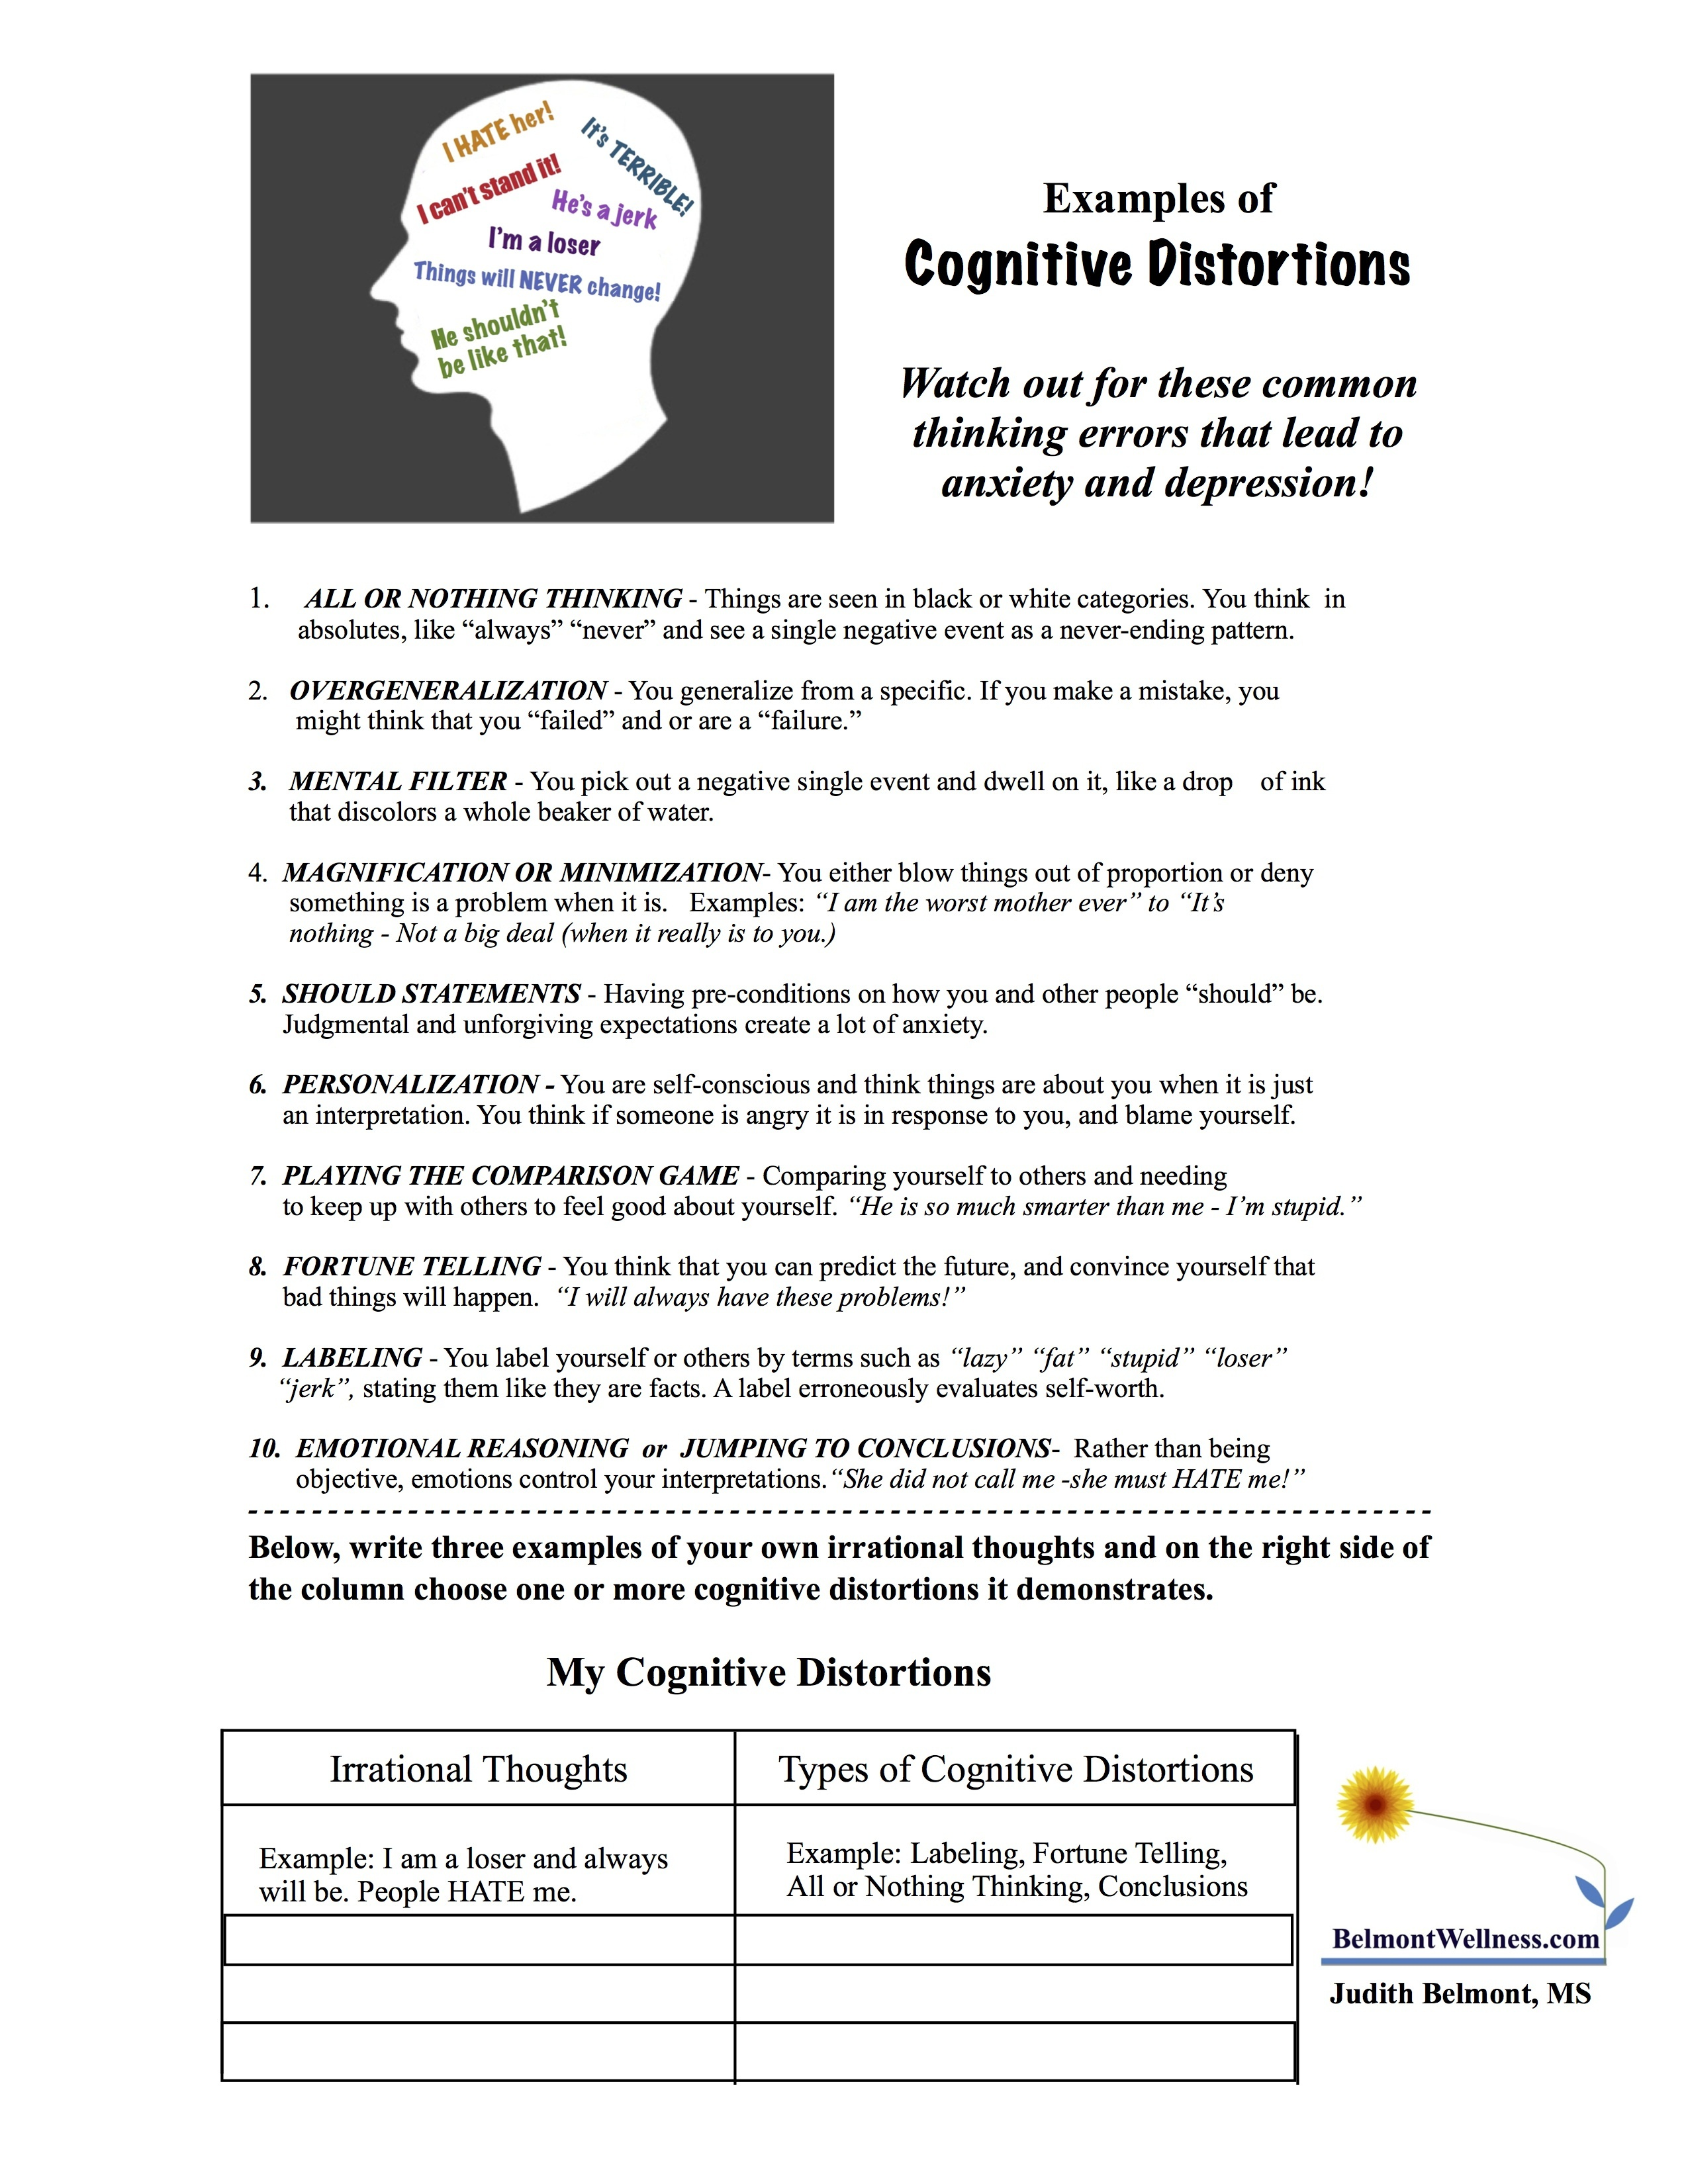 Psycho-Educational And Mental Health Worksheets And Handouts - Free Printable Mental Health Worksheets